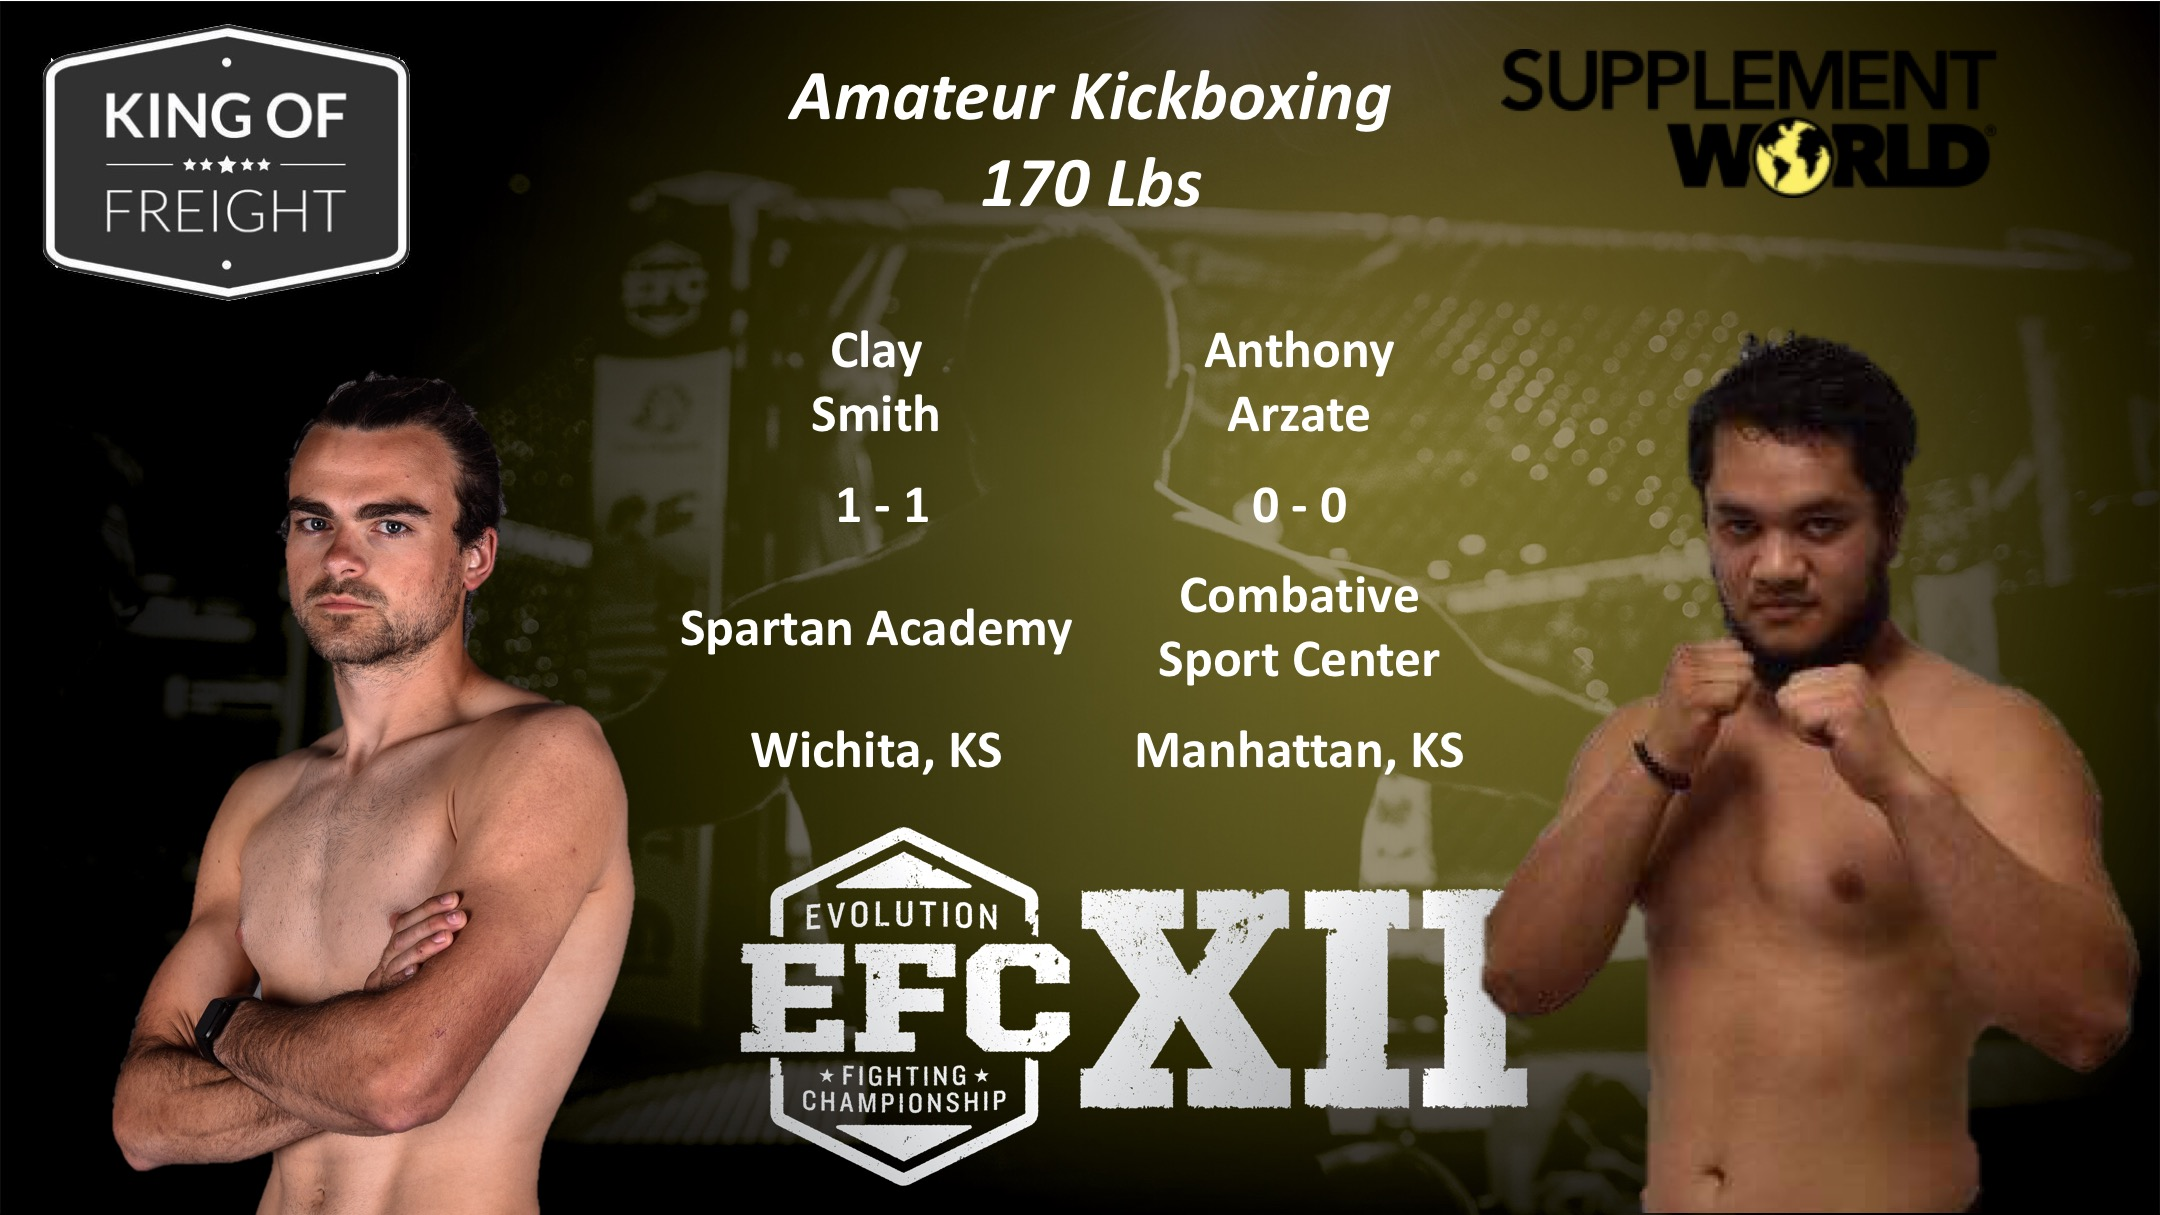 EFC12 Arzate vs Smith.jpg